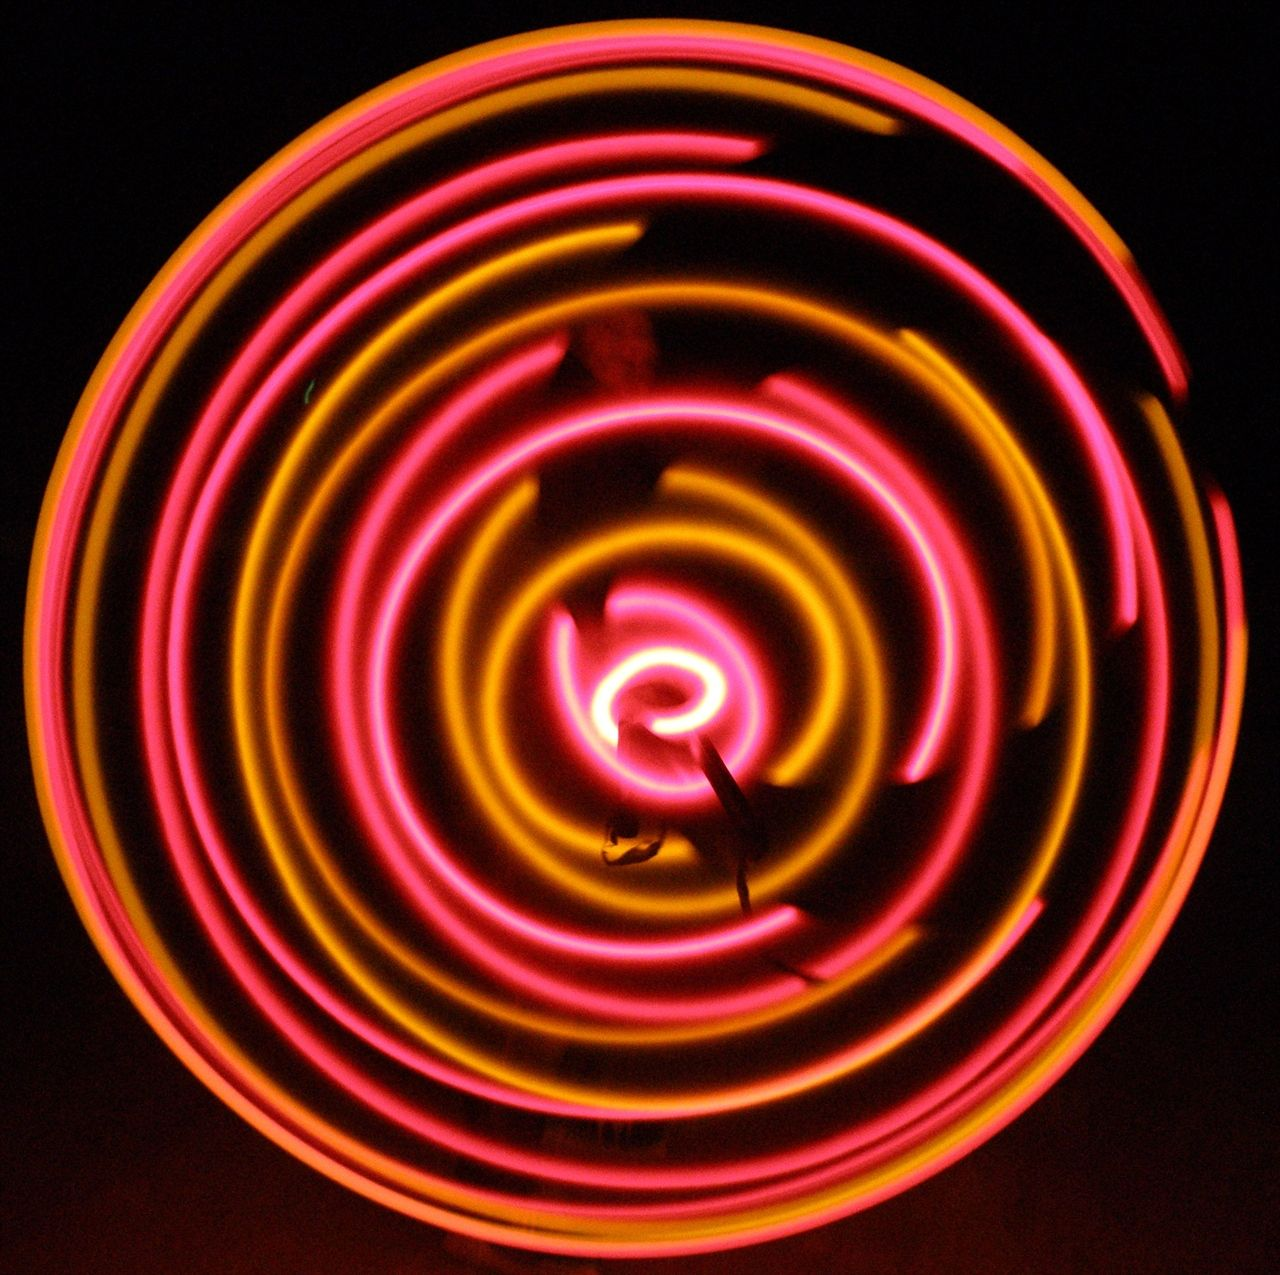 Ring Of Fire Led Hula Hoop By Colorado Hoops Http Www On Pinterest And